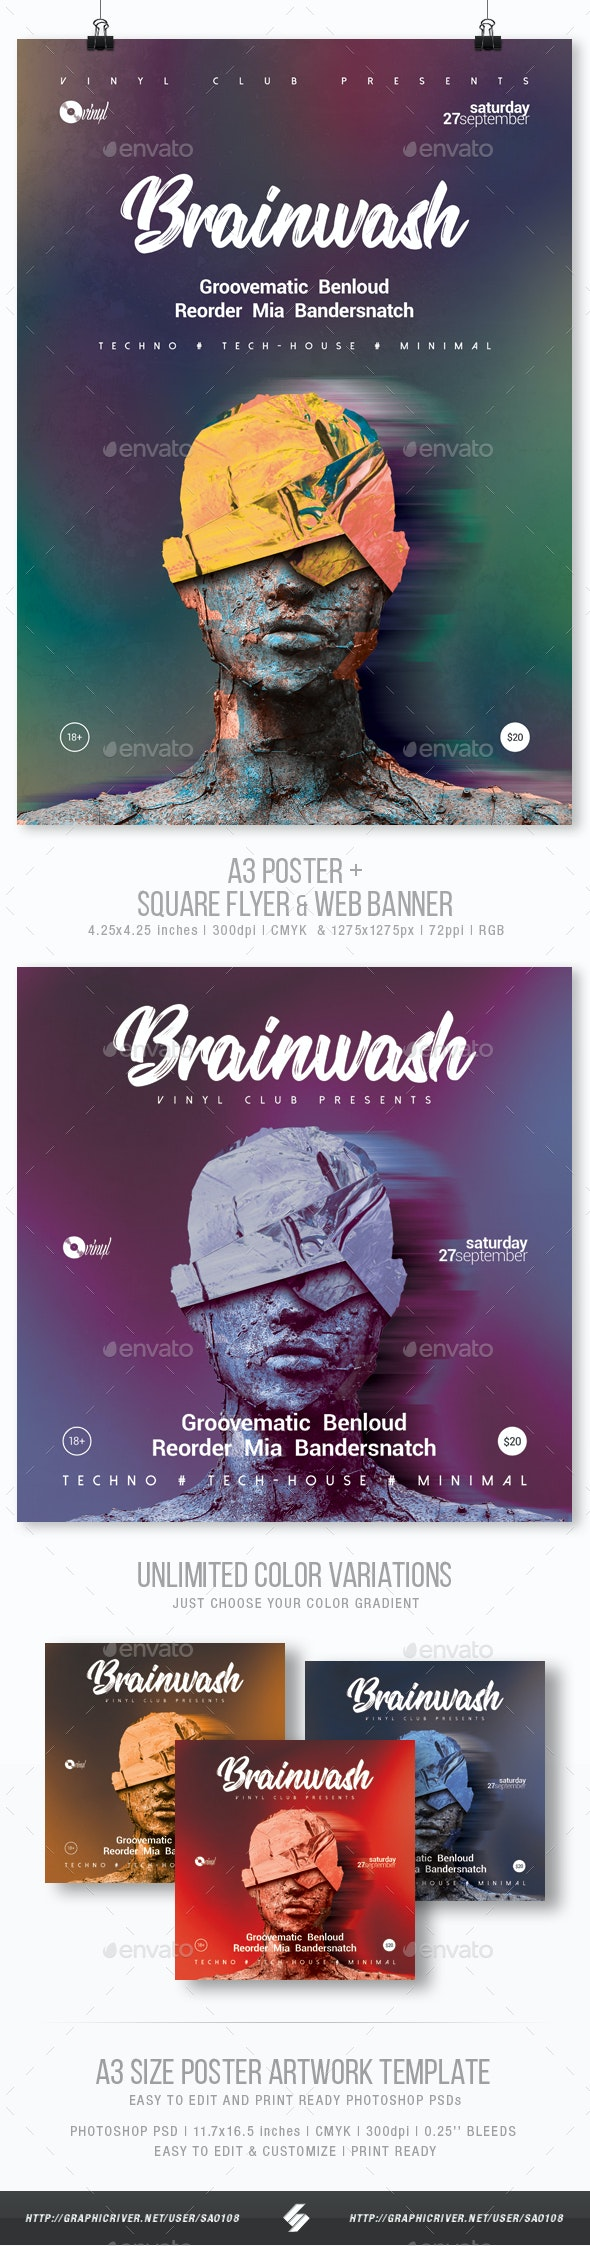 Brainwash vol.2 - Party Flyer / Poster Template A3 - Events Flyers